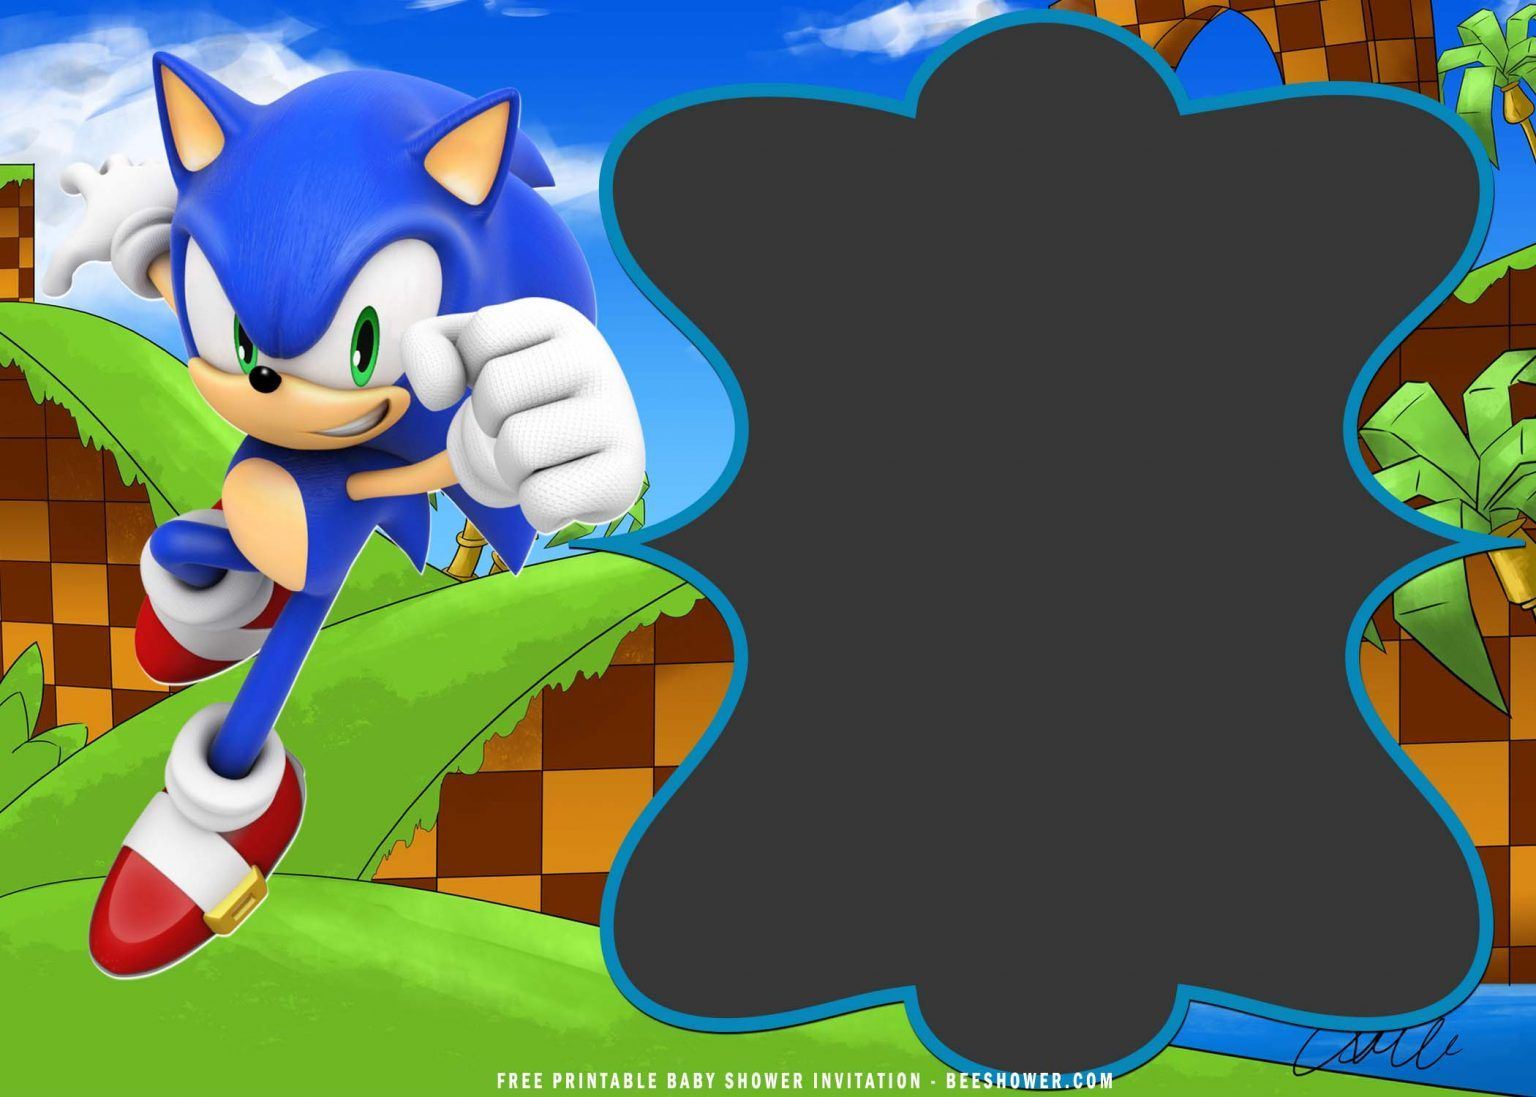 Pin On Christian Sonic Is 6